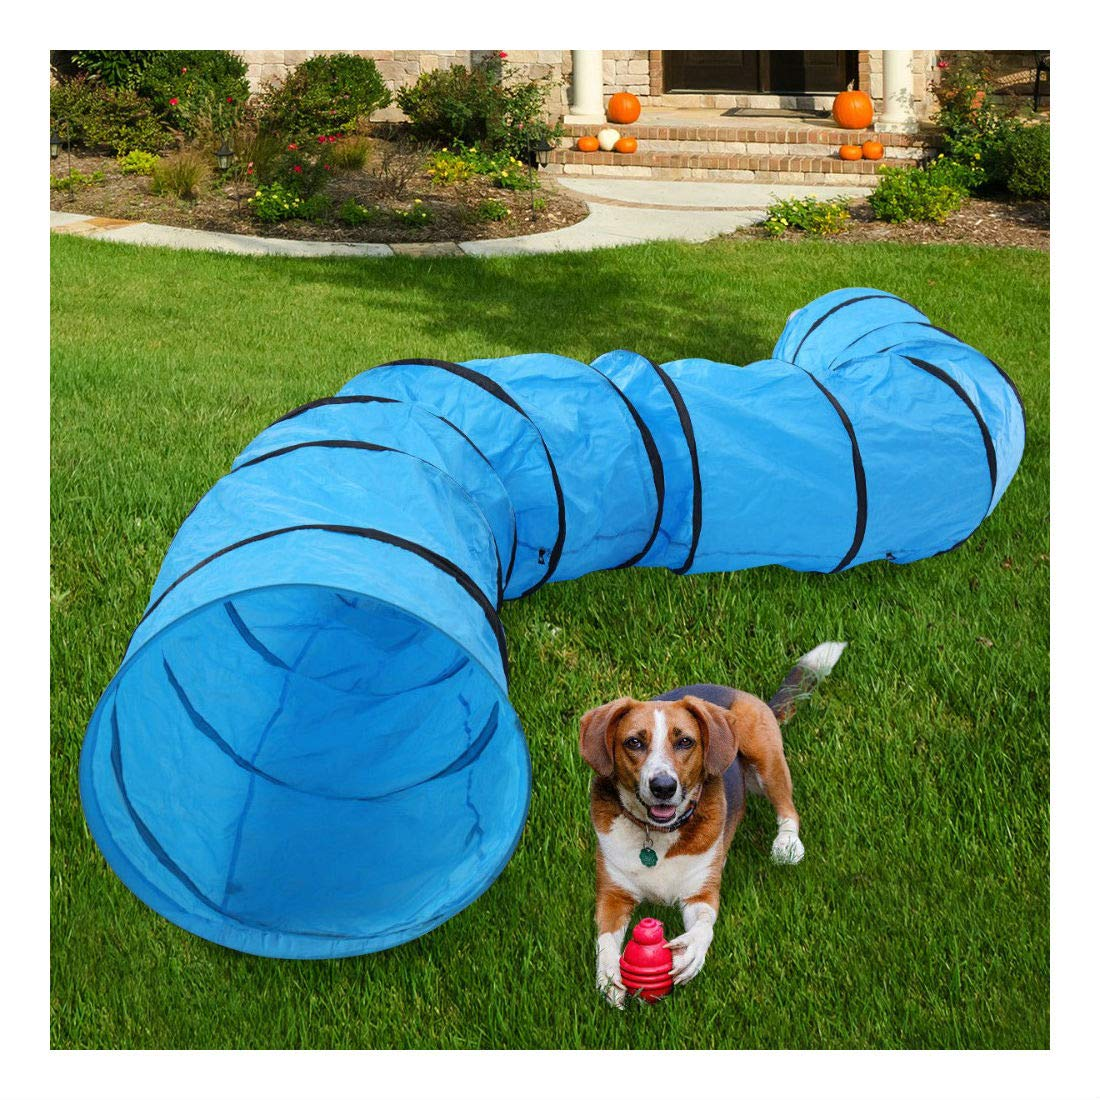 16.4' Agility Training Tunnel Pet Dog Play Outdoor Obedience Exercise Equipment by Unknown